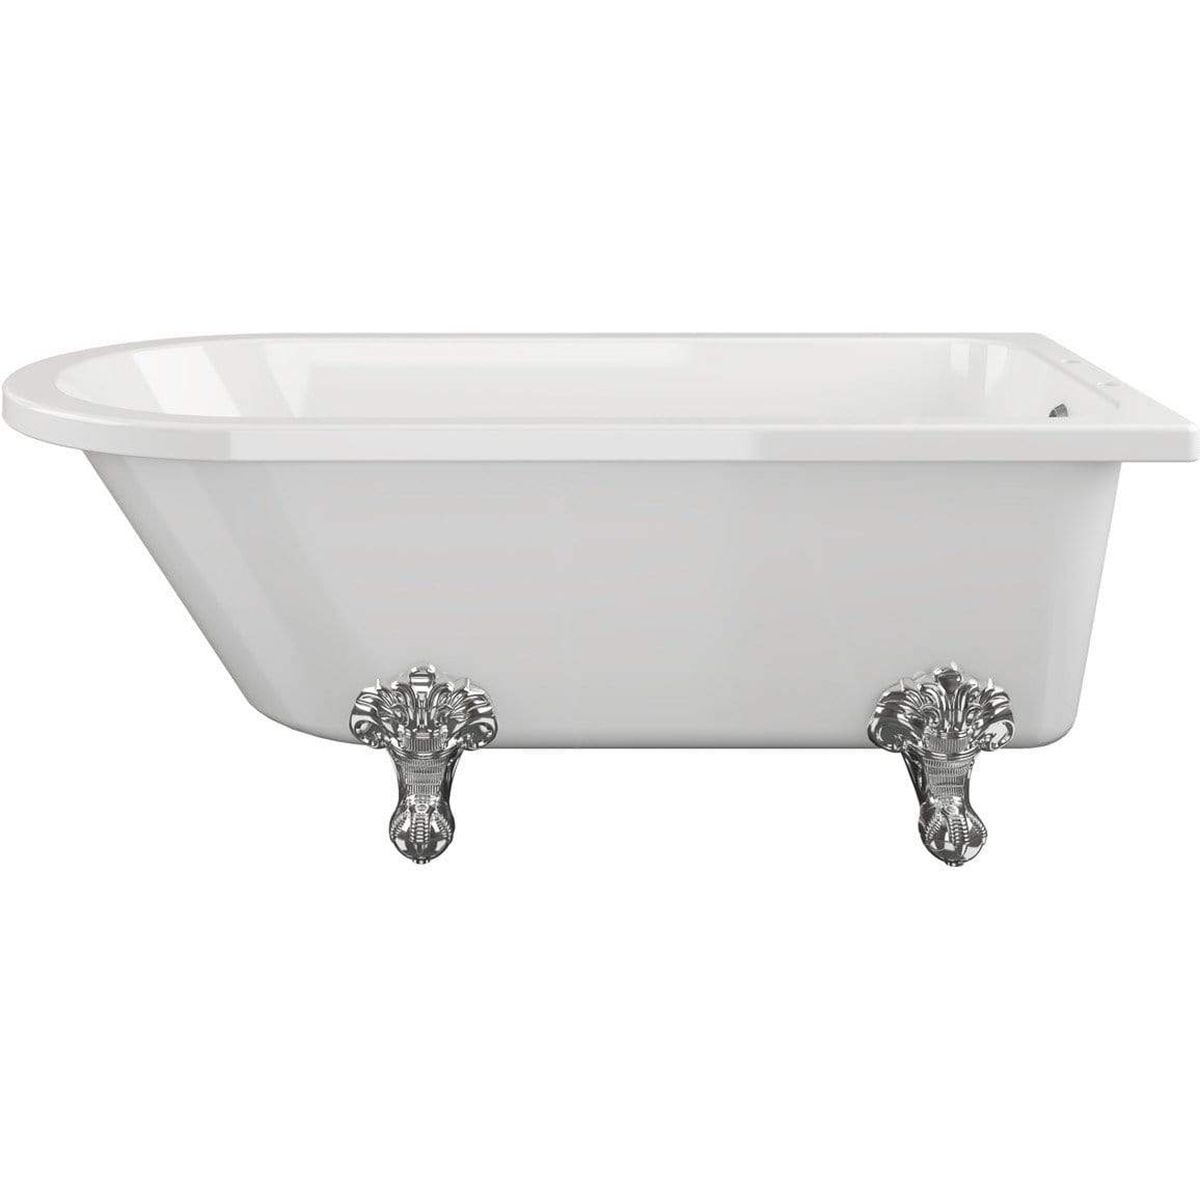 Bathrooms To Love Traditional Corner Freestanding Bath with Feet 1500mm x 750mm